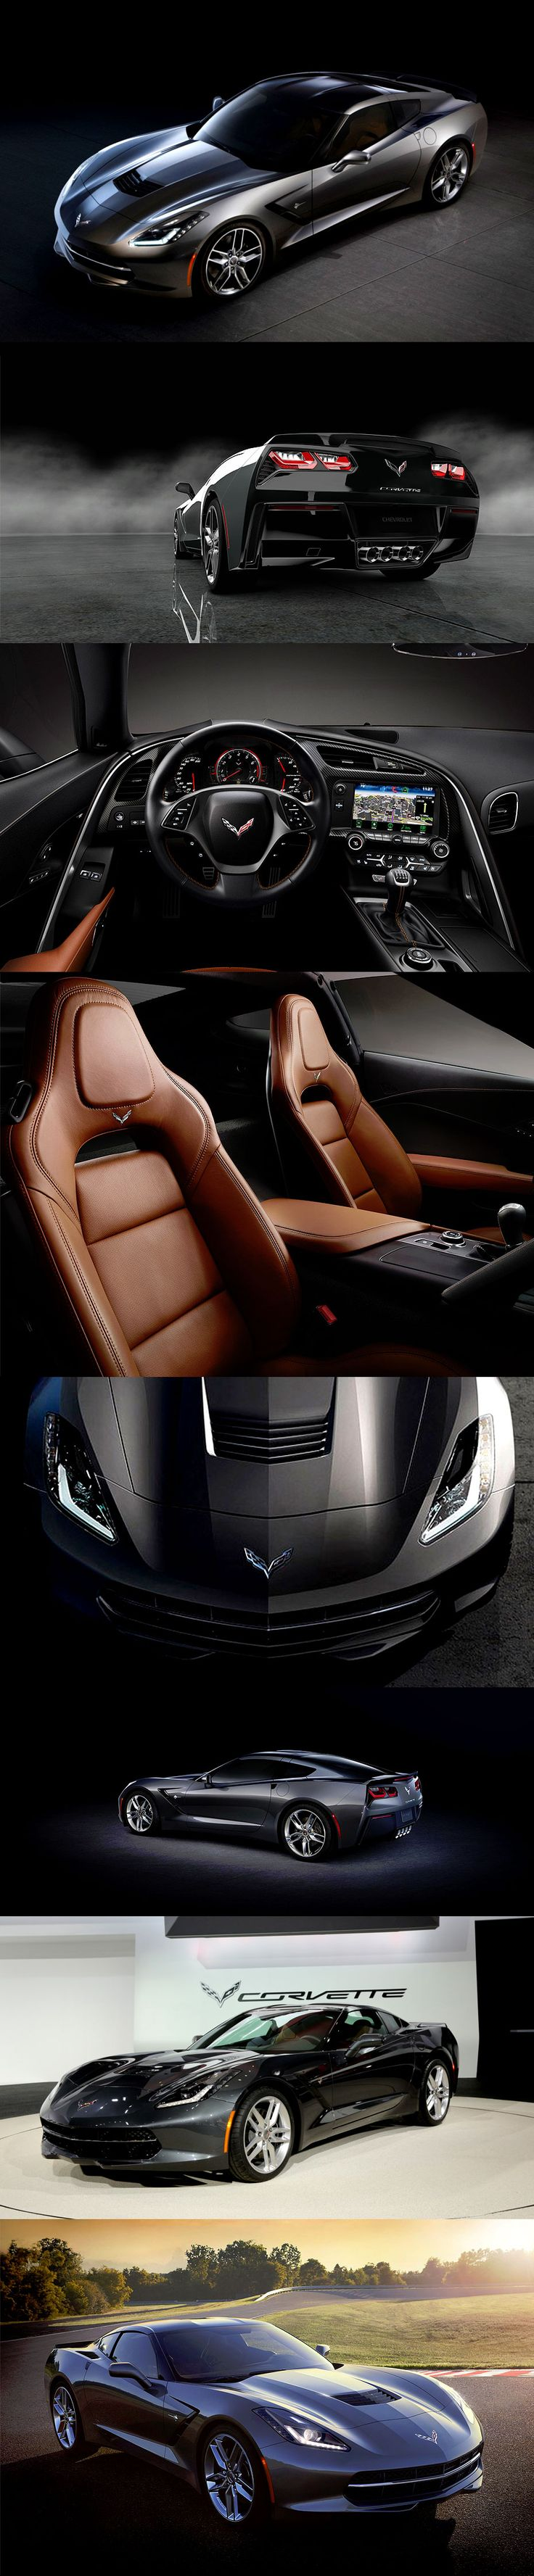 2014 Corvette Stingray. #coupon code nicesup123 gets 25% off at  Provestra.com Skinception.com